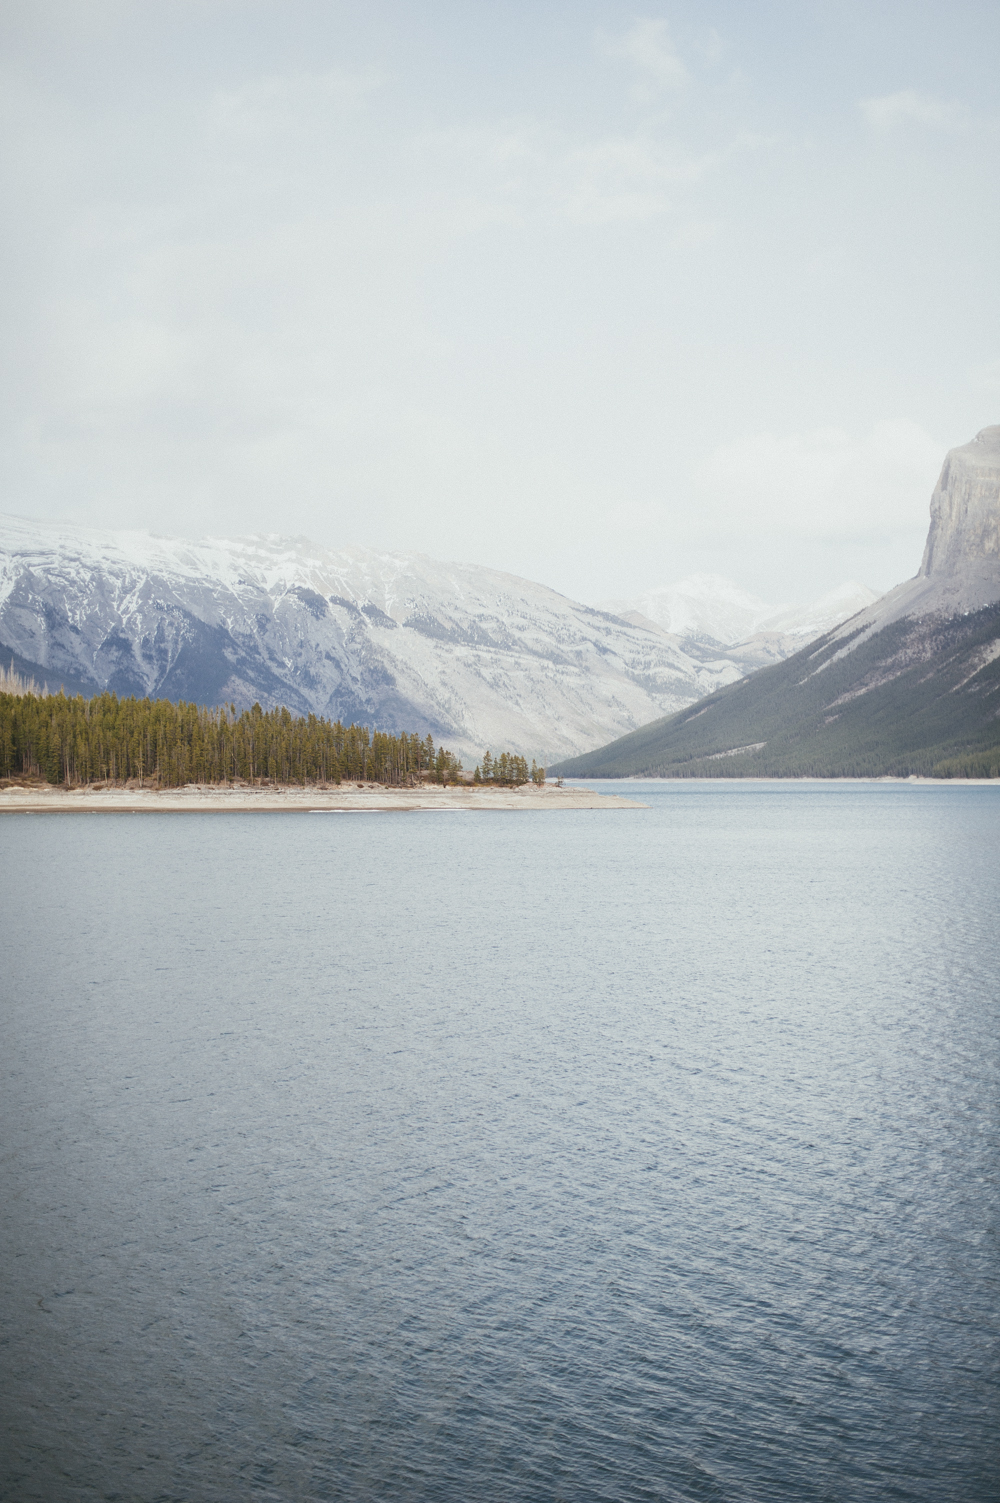 Lake Minnewanka mountains, Banff